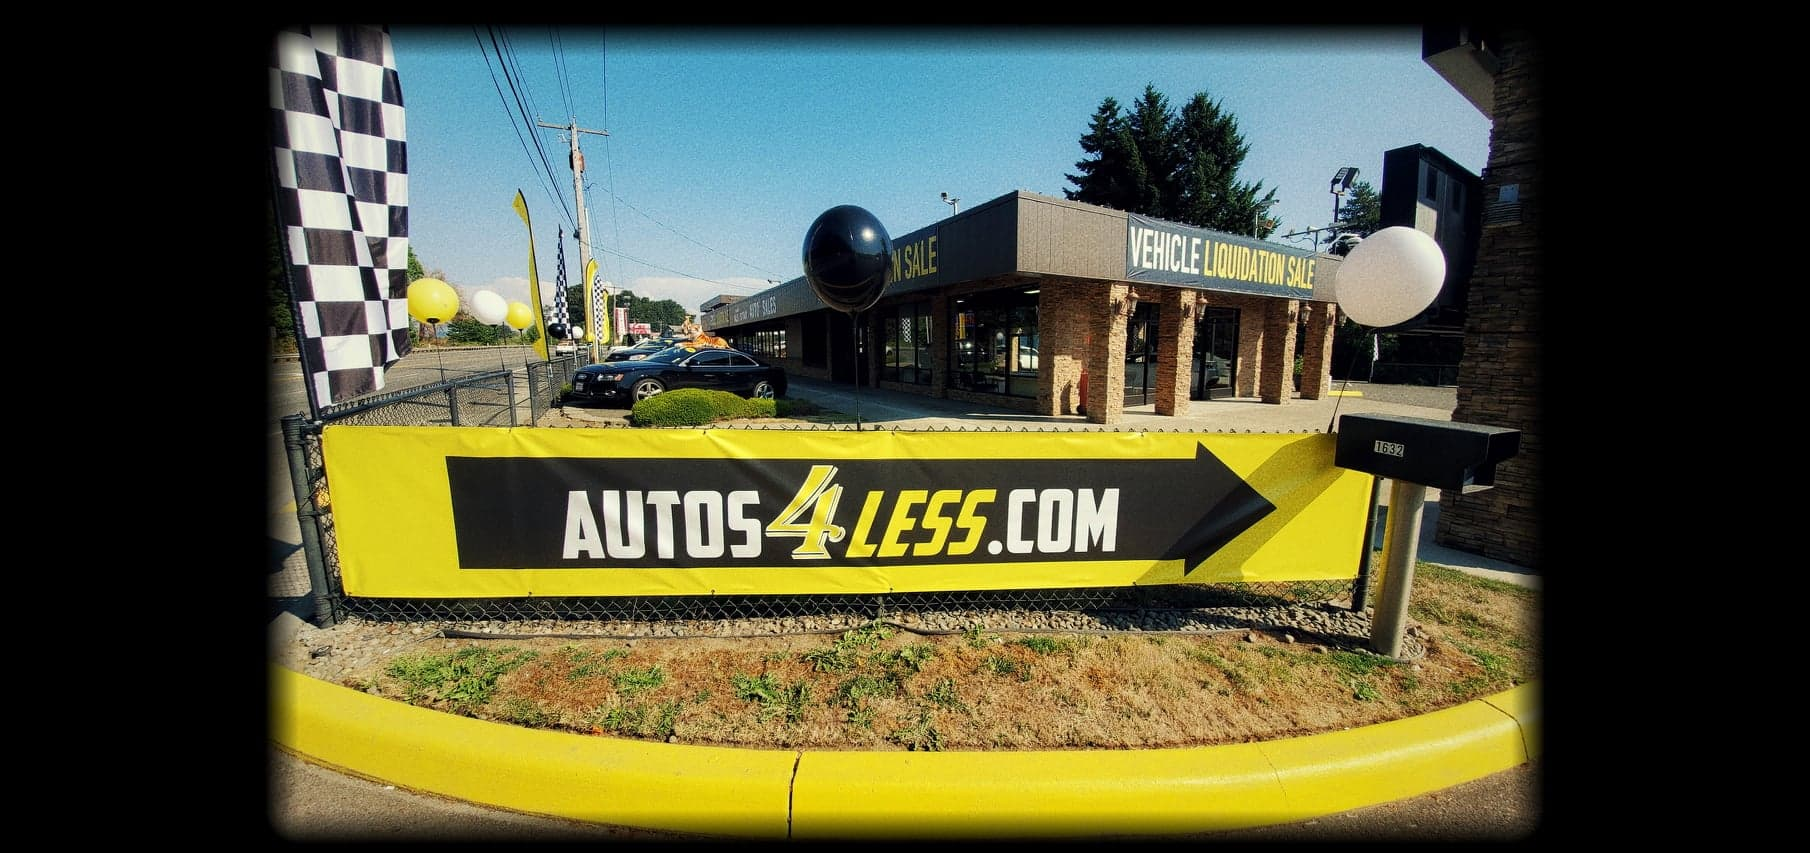 Autos4Less Used Car Dealership